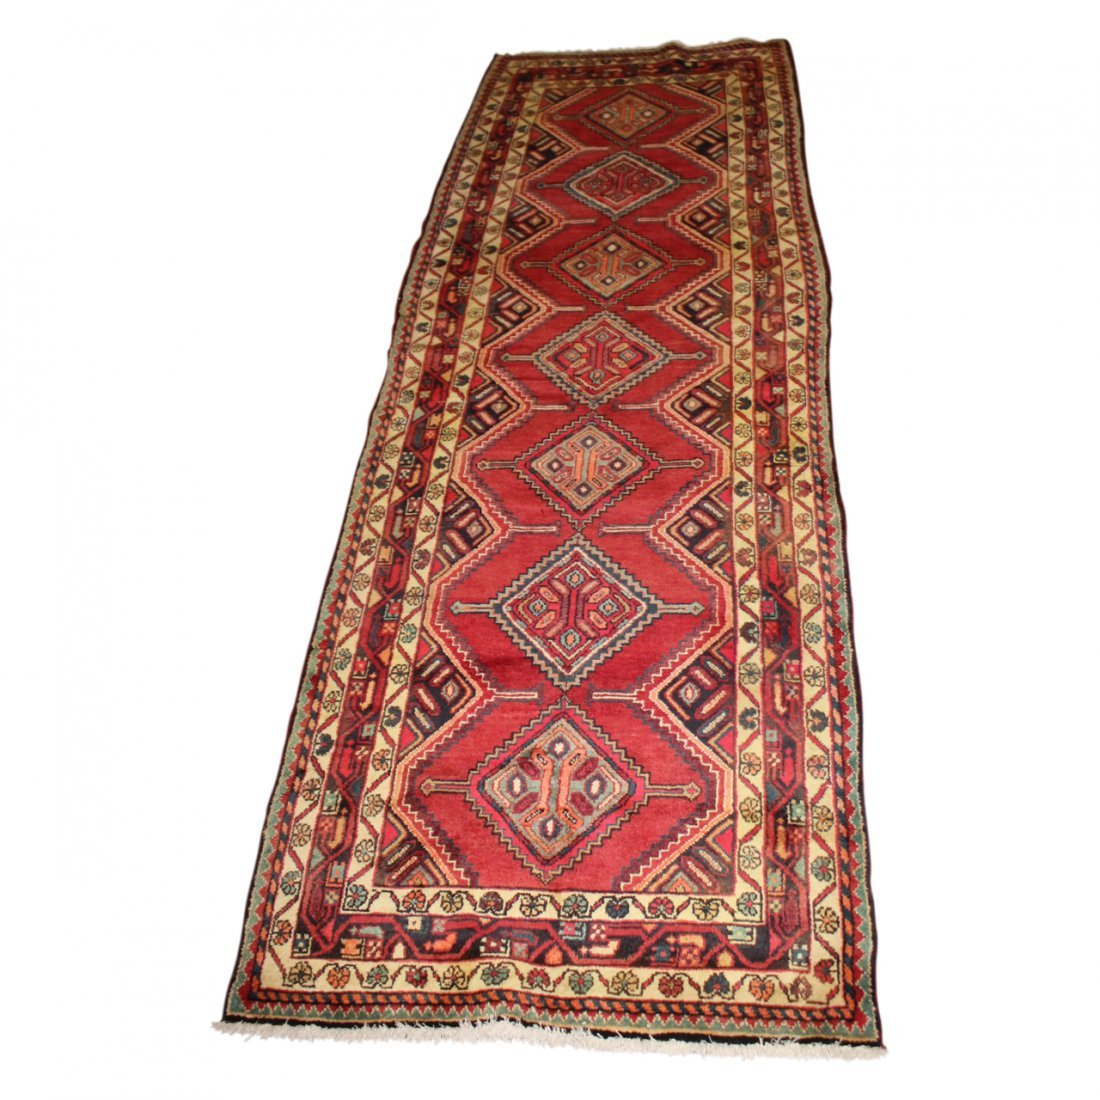 Vintage Hamadan Persian Carpet